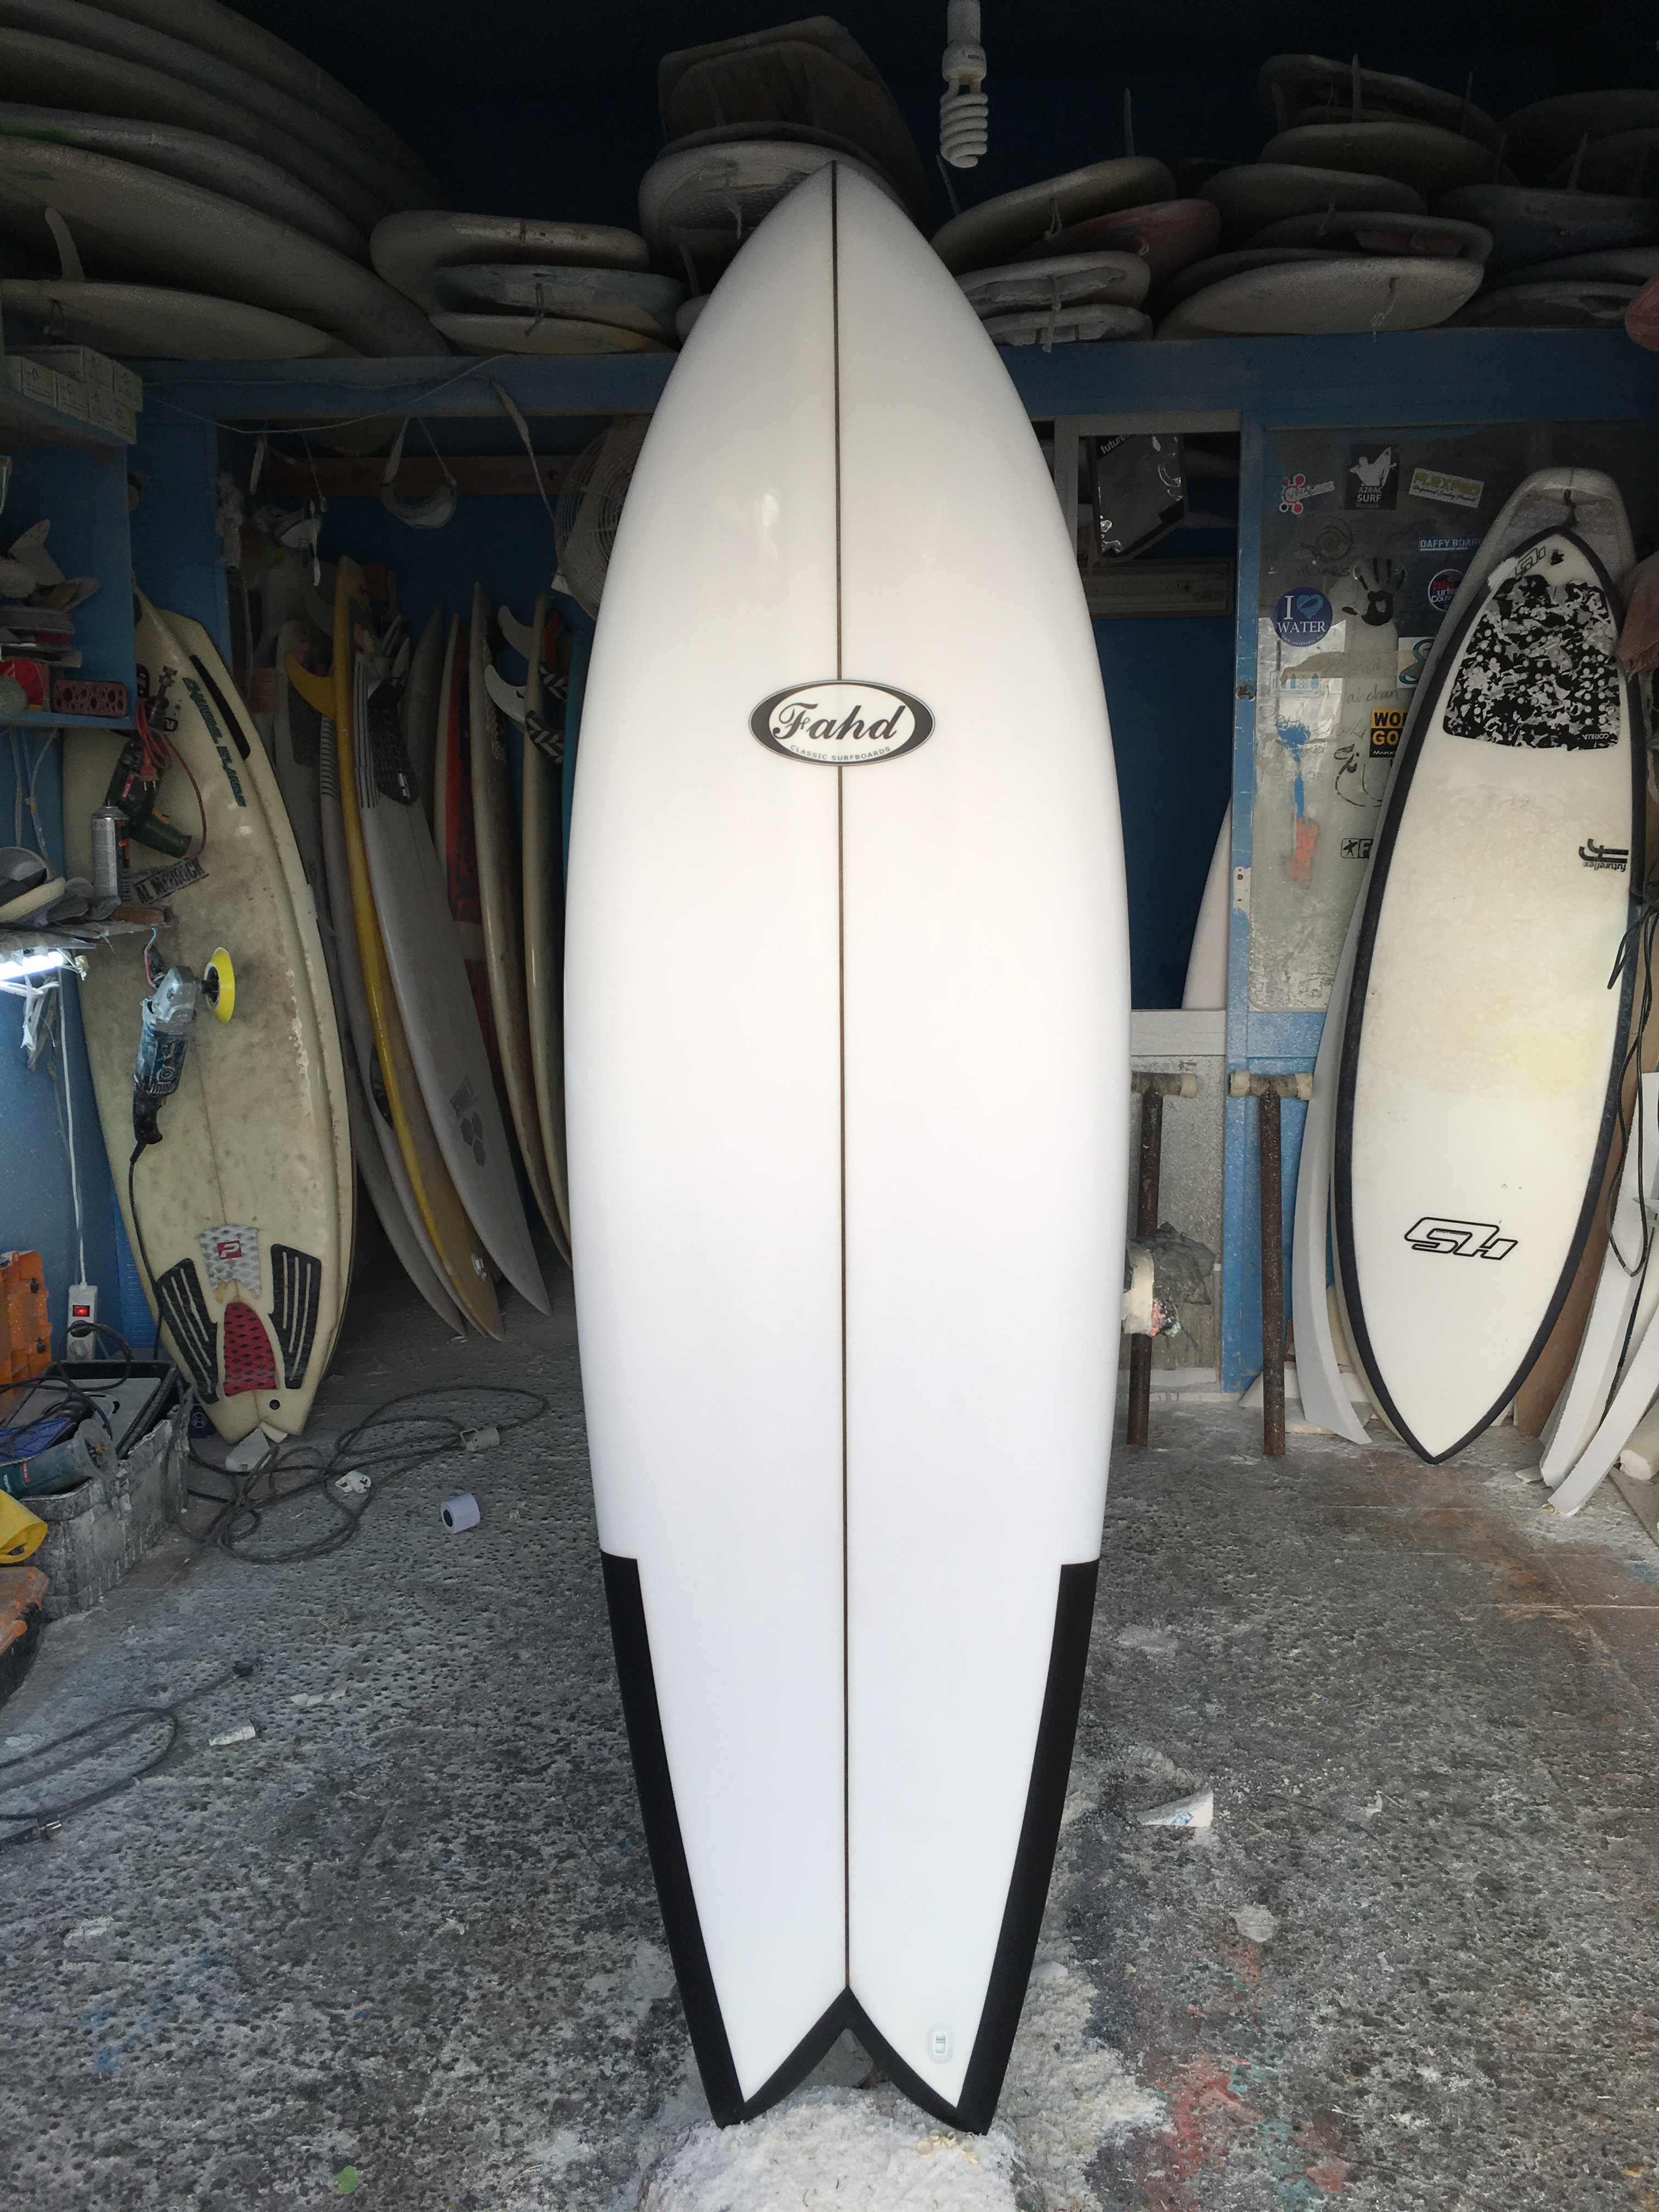 Fahd Handmade Surfboards Just make sure you leave your surfboard in the lockup. fahd handmade surfboards